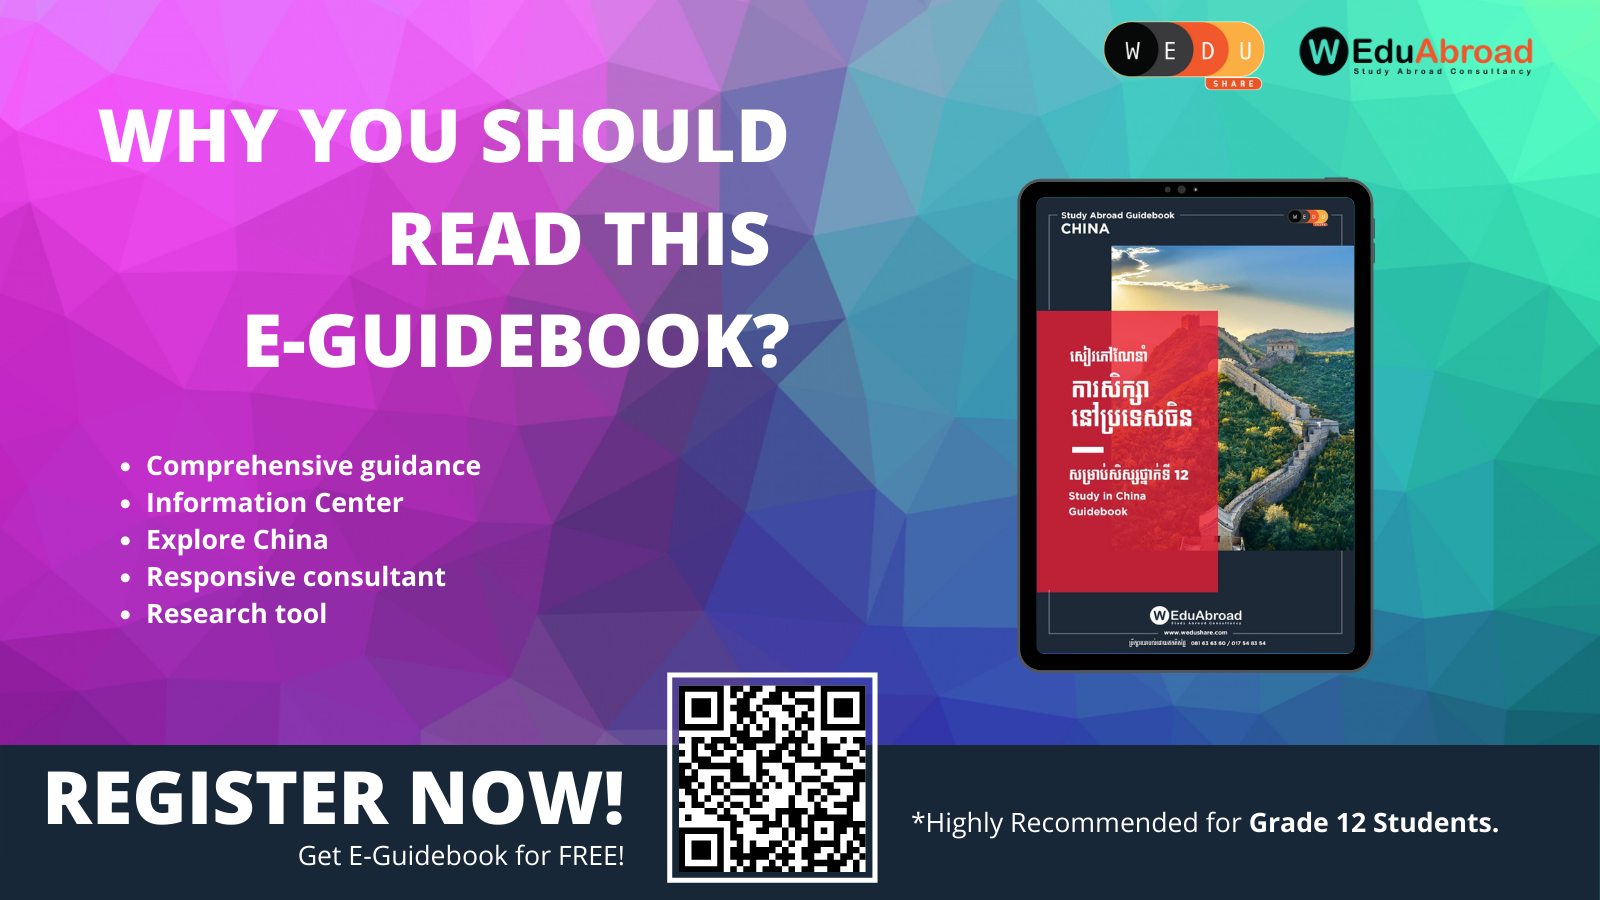 Top 5 Reasons You Should Read the Study in China E-Guidebook